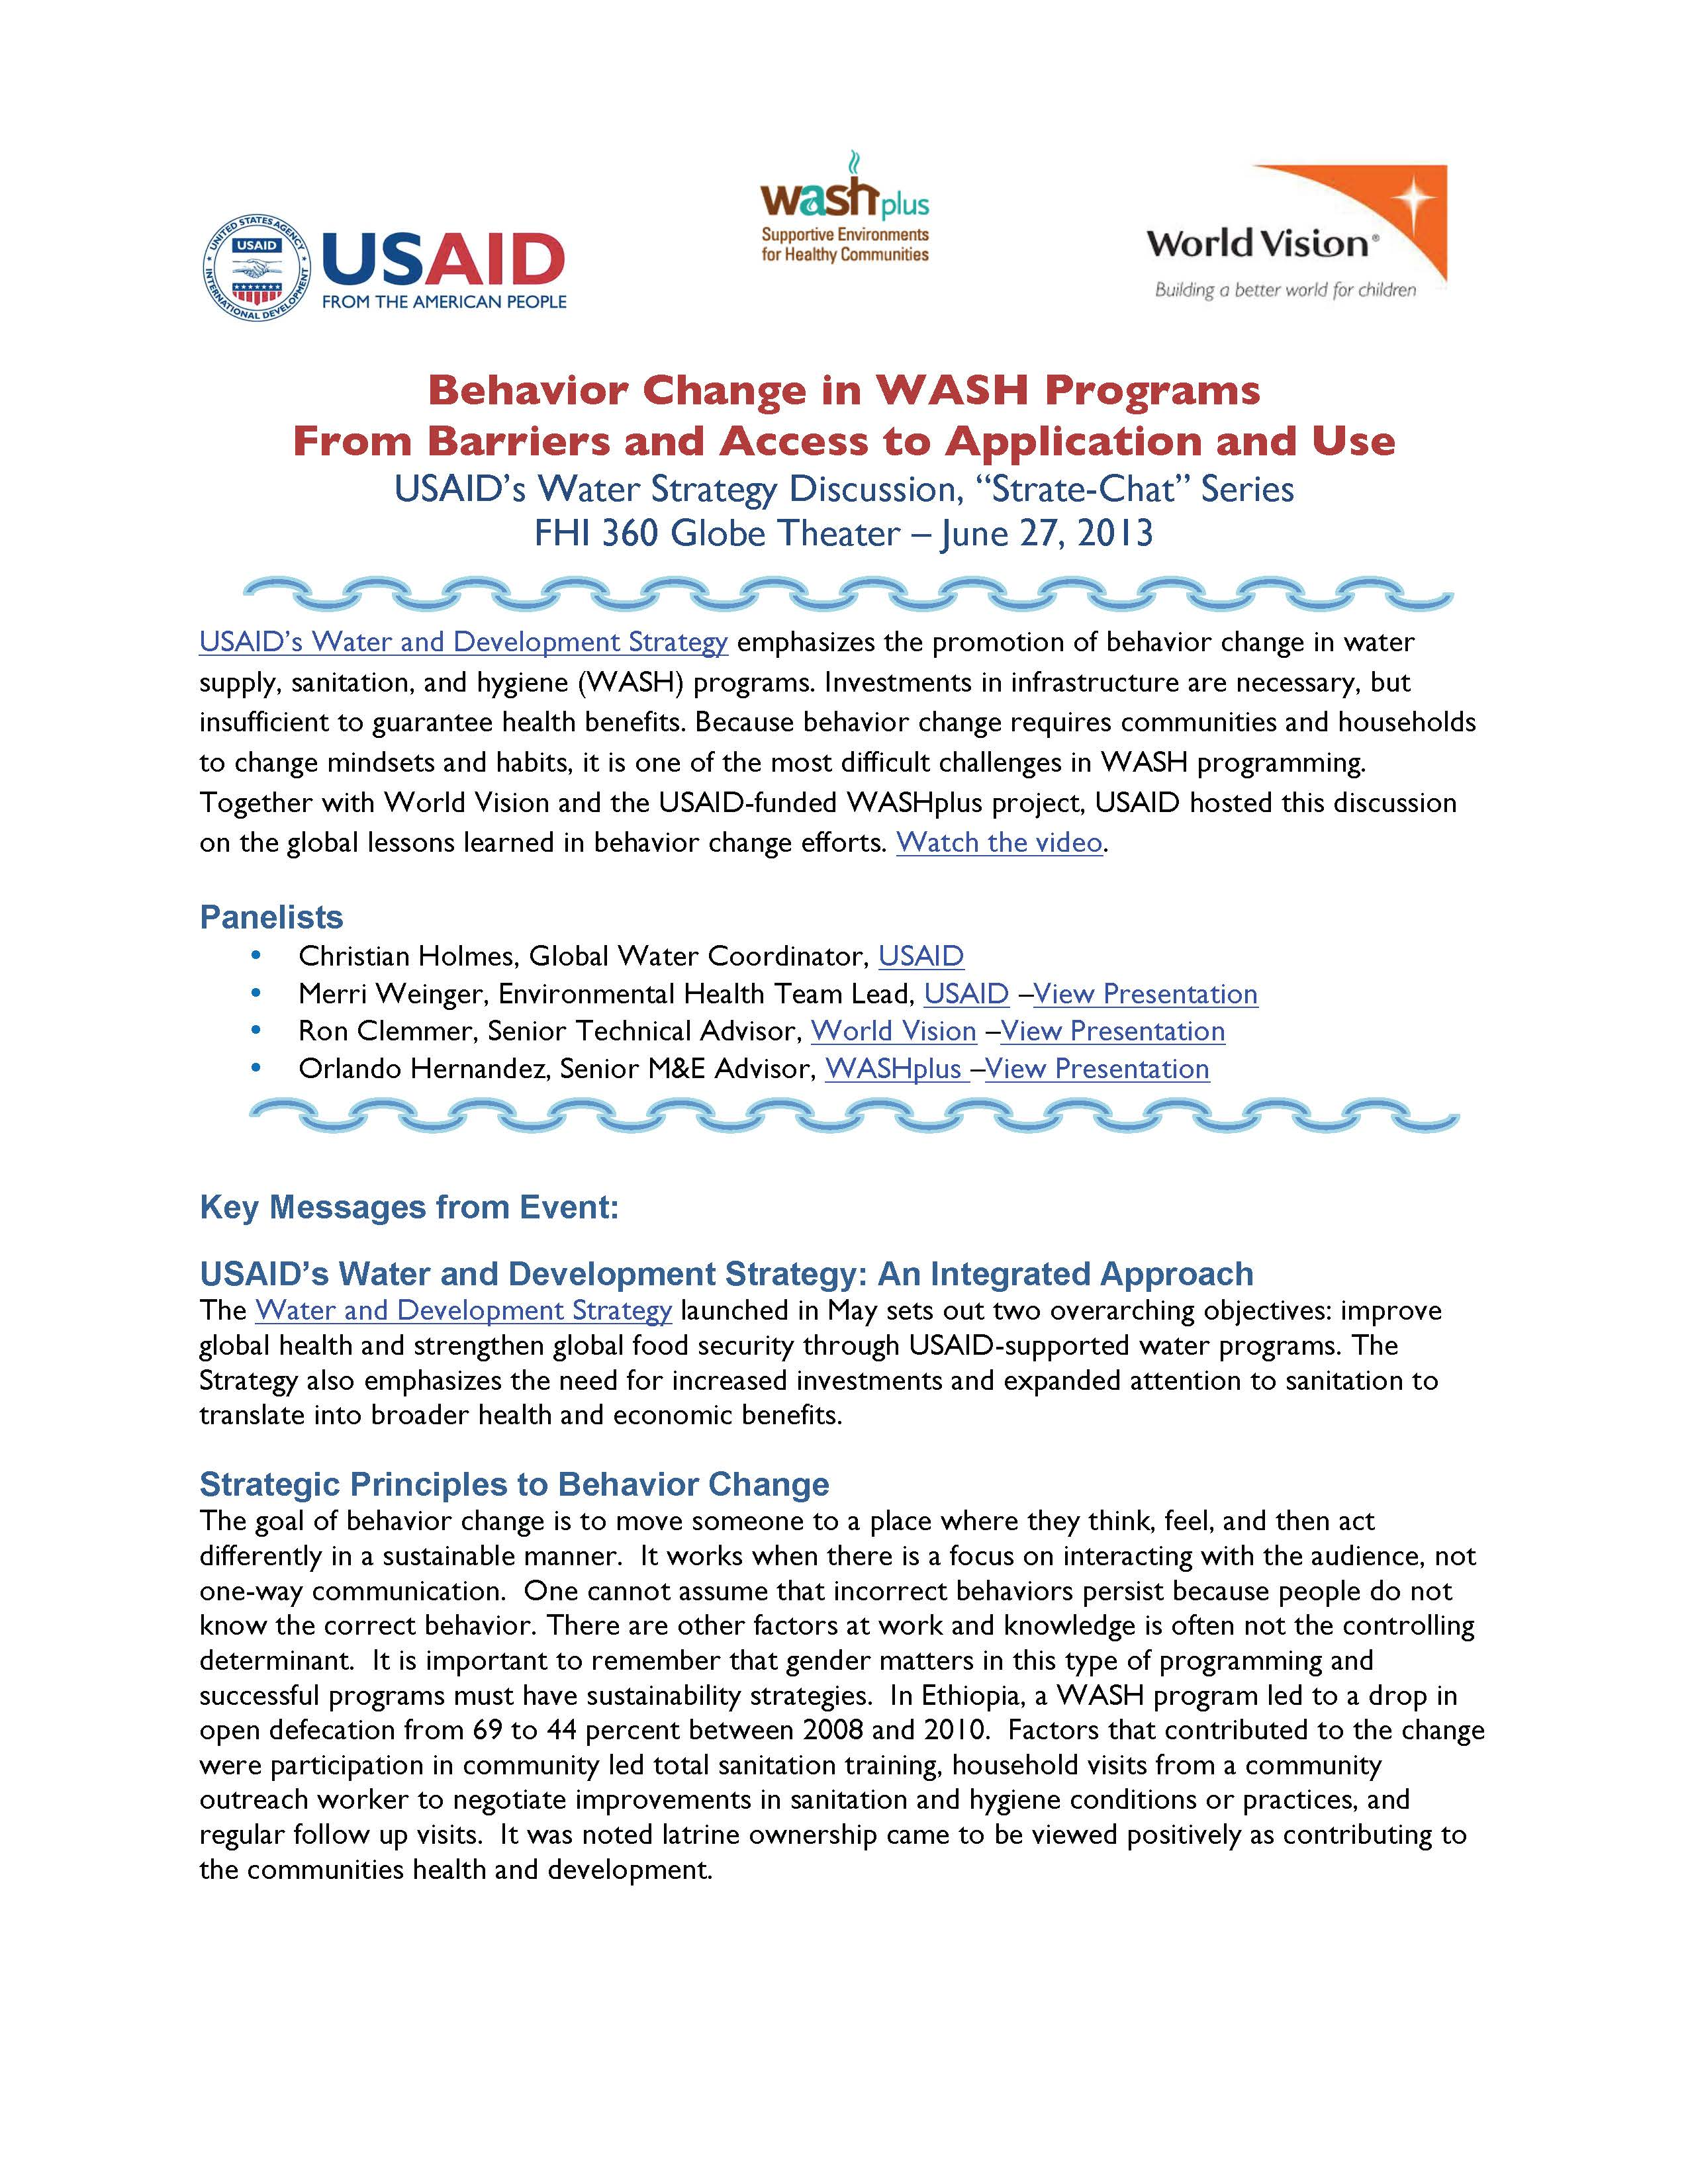 Key Takeaways - Behavior Change in WASH Programs: From Barriers and Access to Application and Use